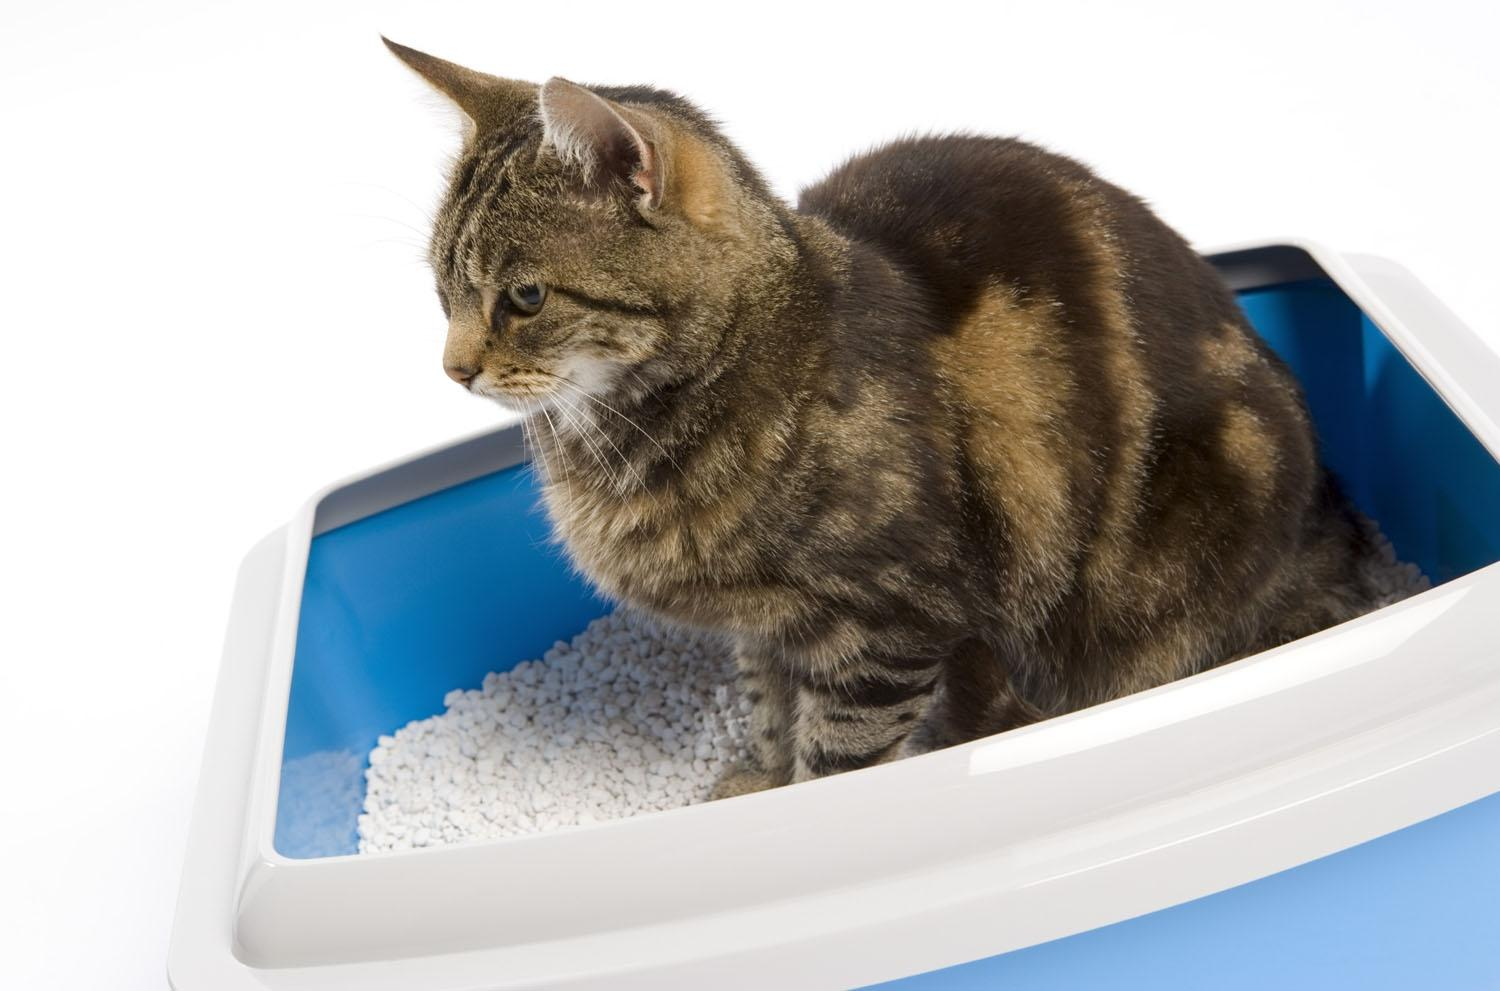 Astuce anti pipi de chat dans la maison - Anti pee cat trick in the house